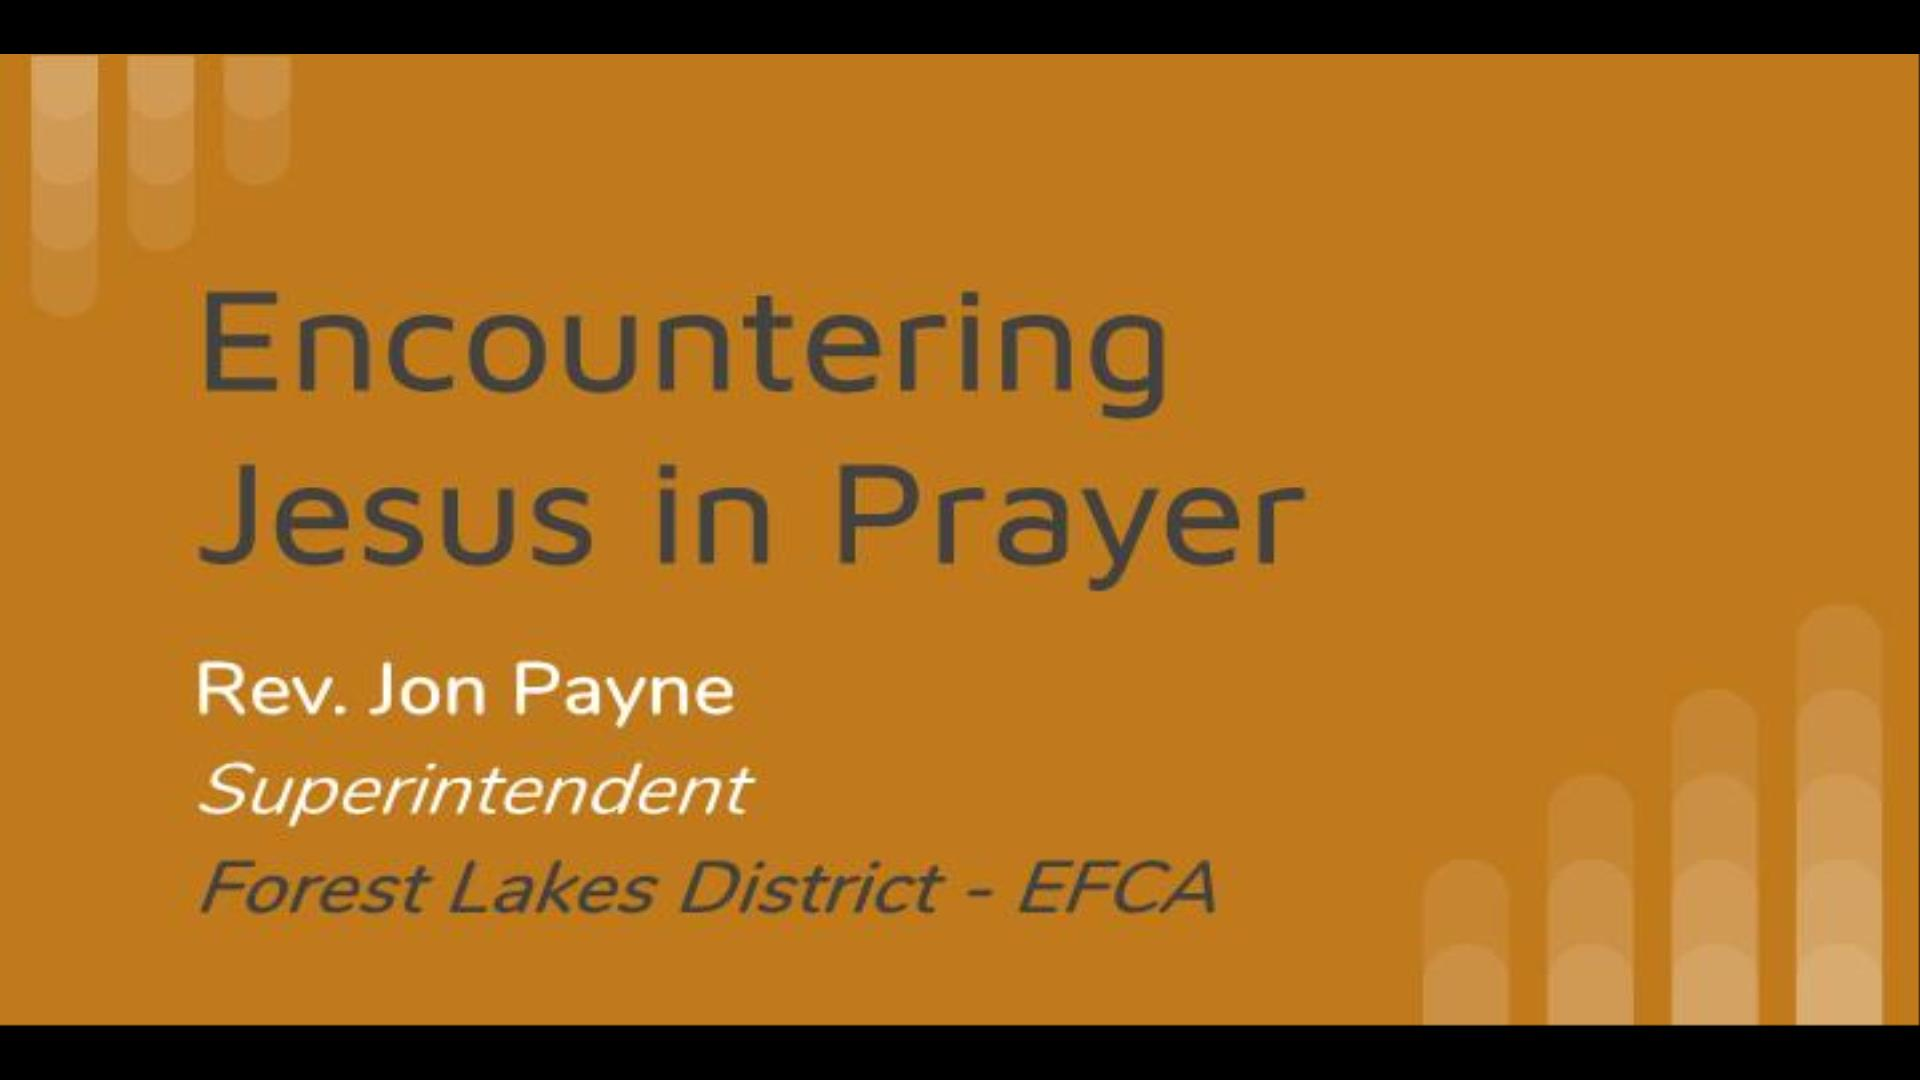 Encountering Jesus in Prayer